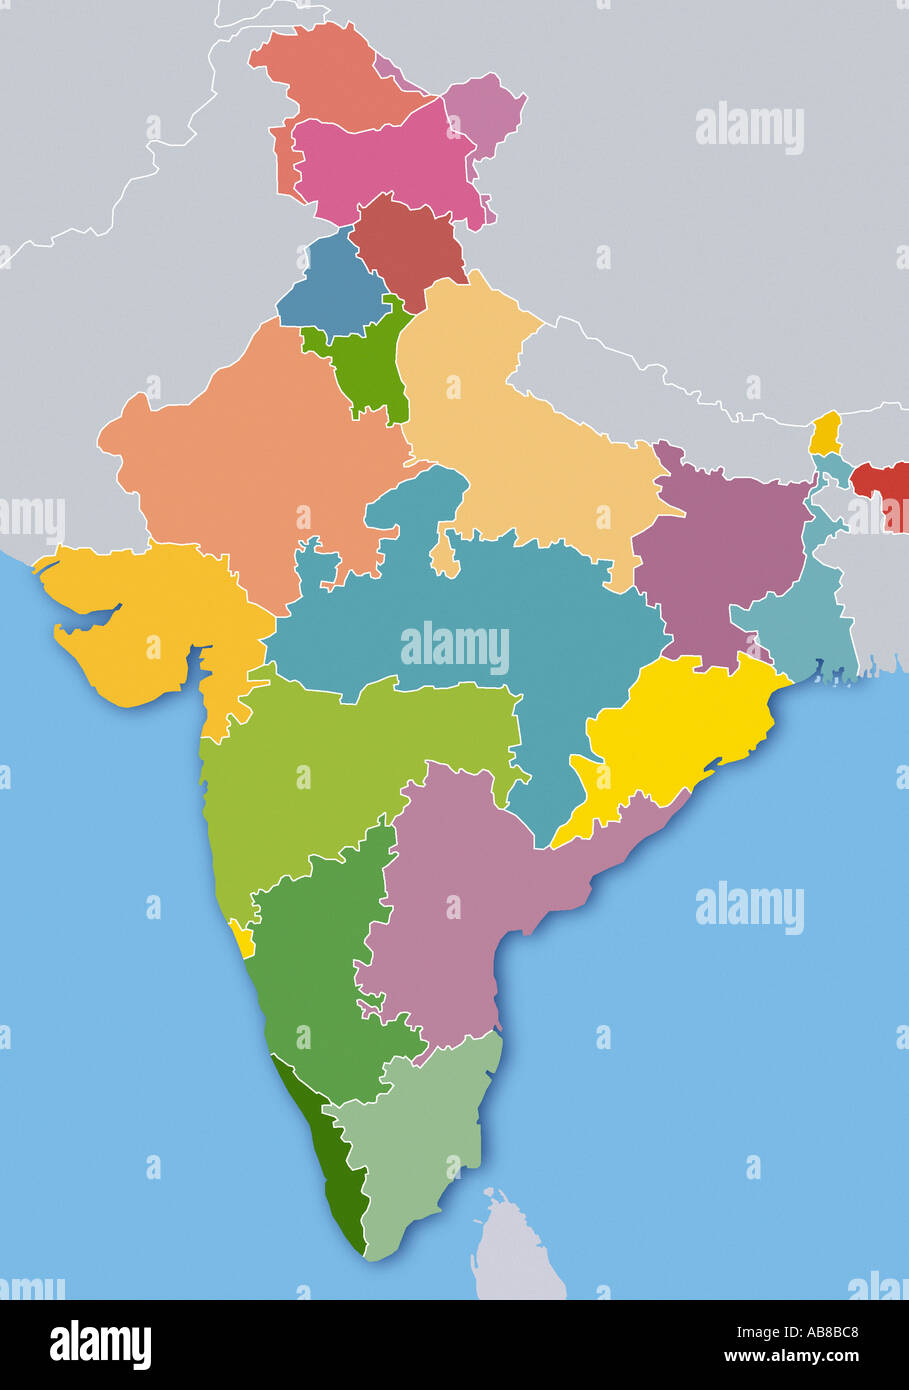 India Map Outline Stock Photos & India Map Outline Stock Images - Alamy